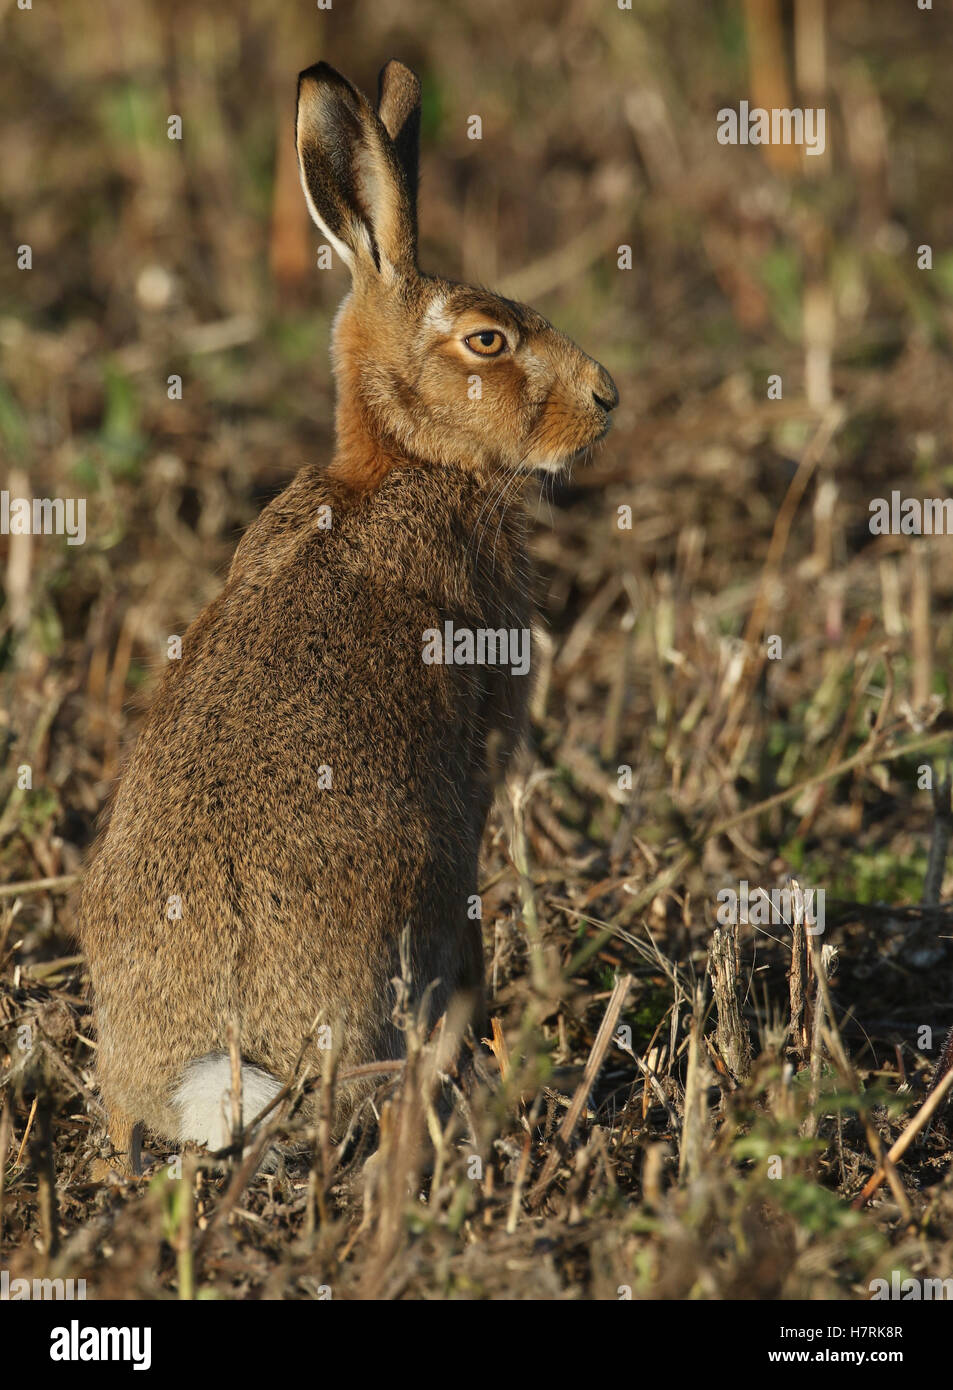 A Brown Hare (Lepus europaeus) standing in a field. - Stock Image